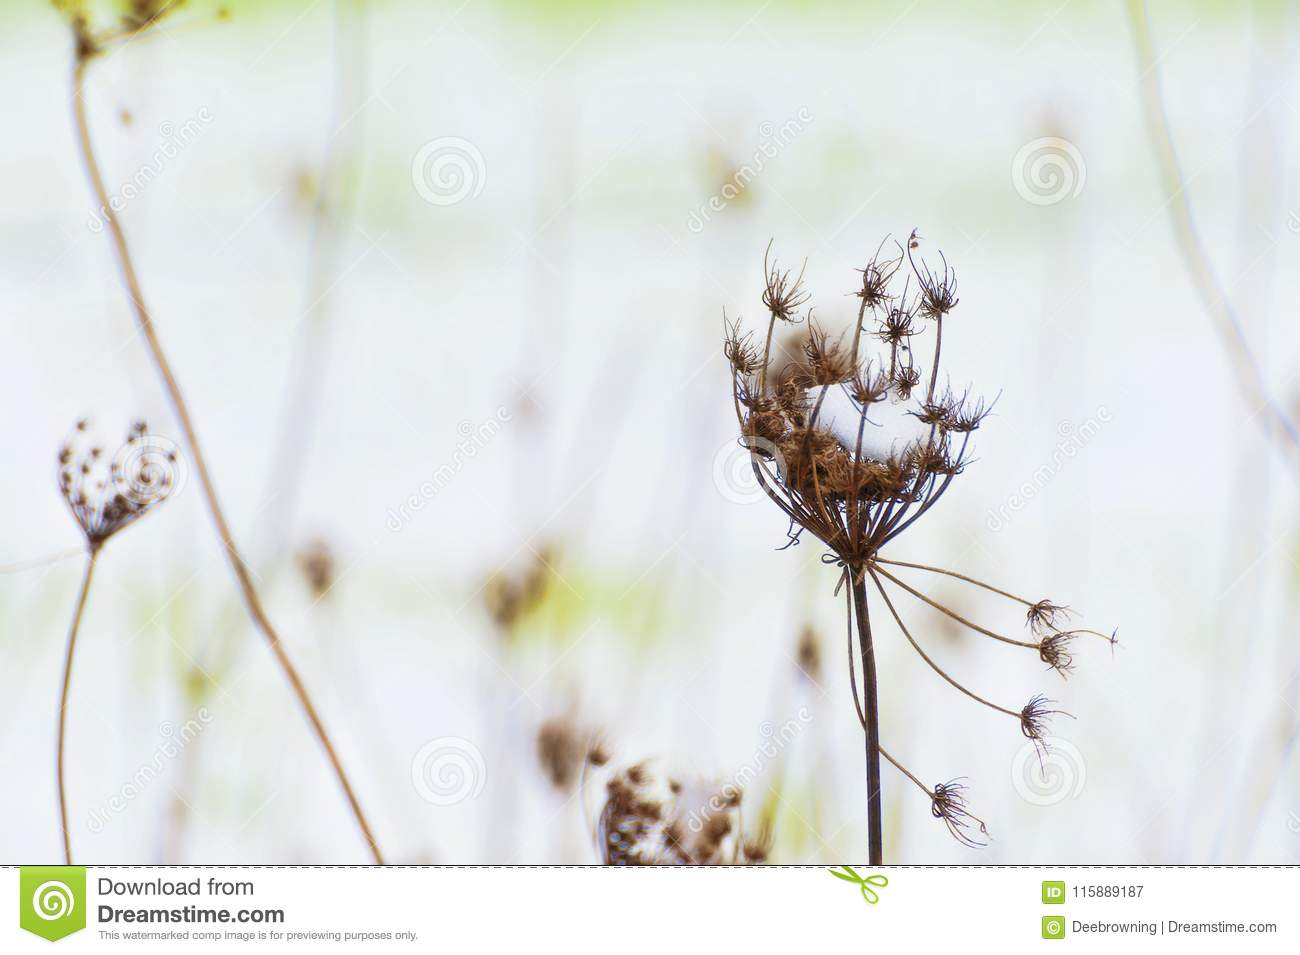 Snow On Queen Anne Lace Dried Stem Stock Image - Image of